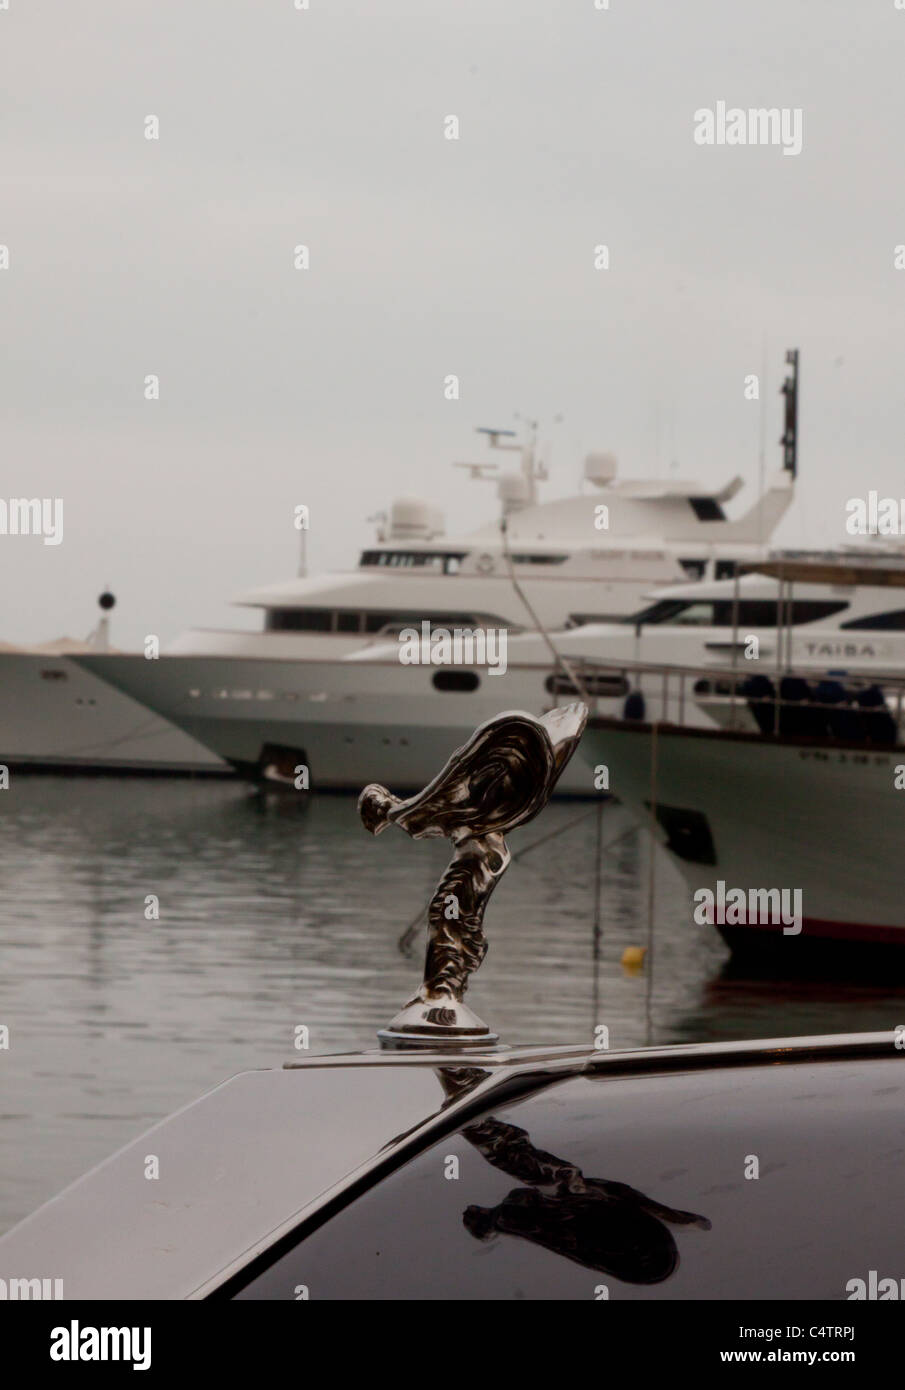 rolls royce wings in front of luxury yachts in puerto banus harbour marbella spain on a slightly overcast day